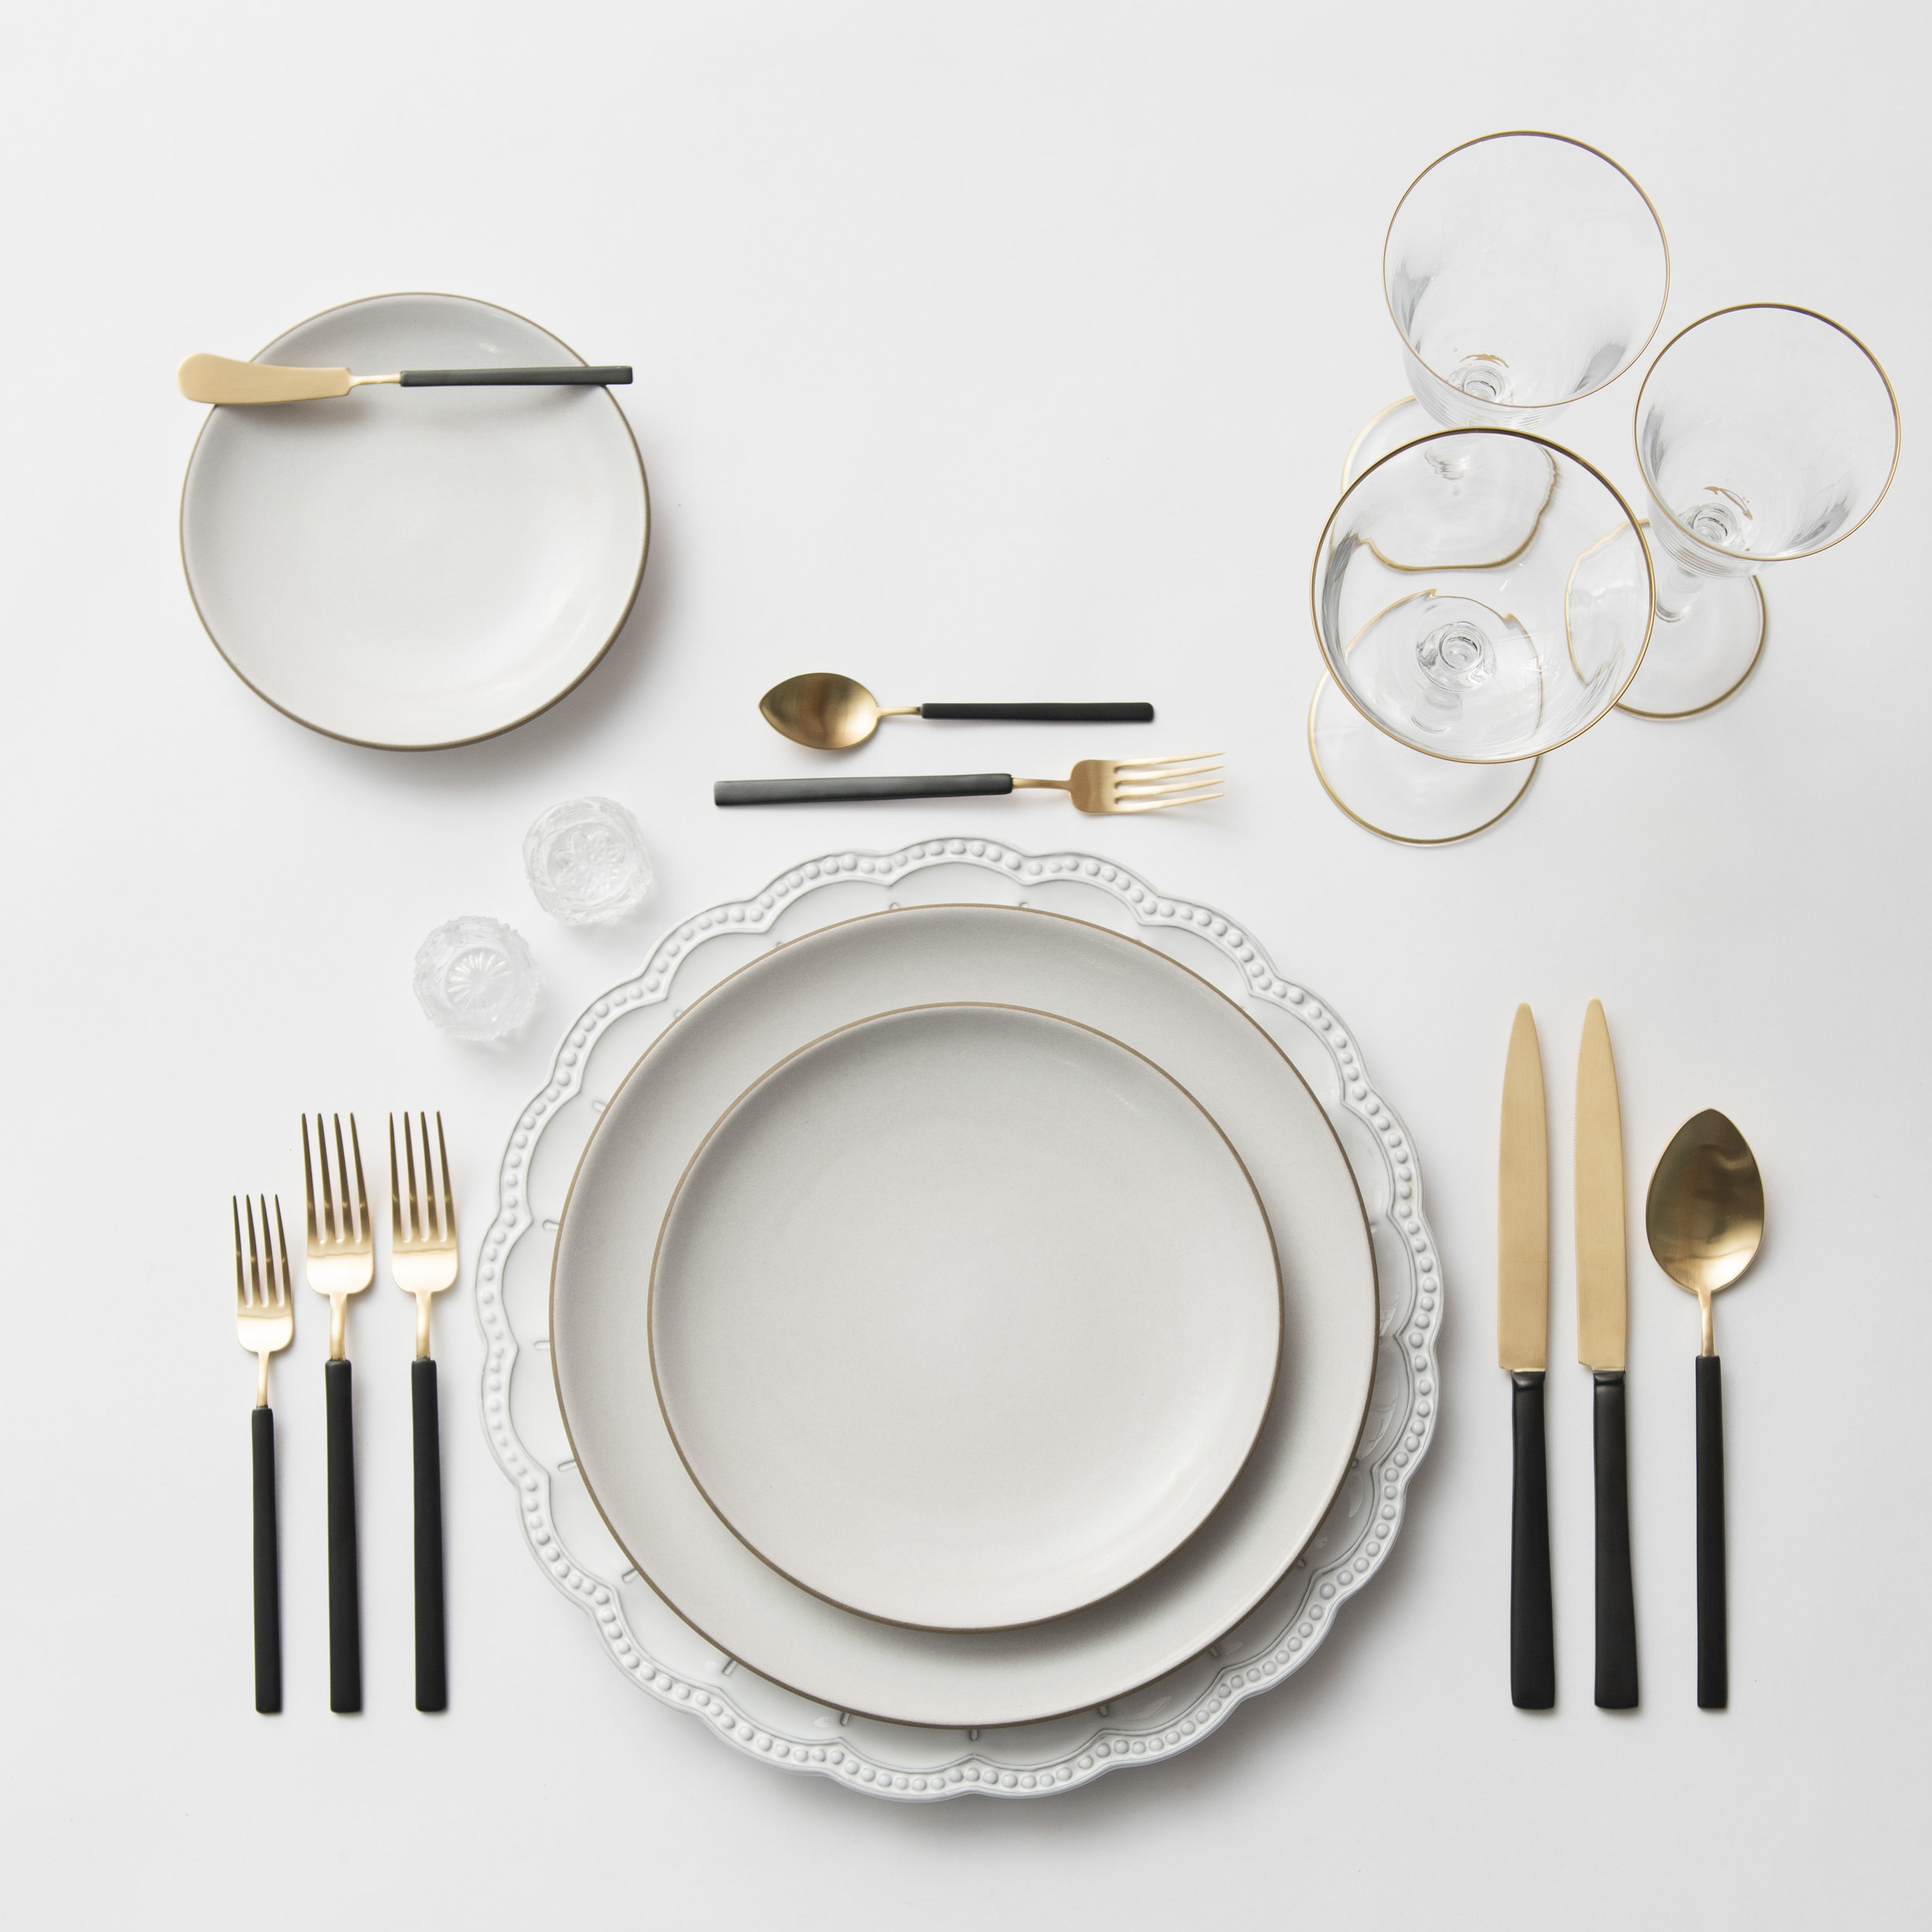 RENT: Signature Collection Chargers + Heath Ceramics in Opaque White + Axel Flatware in Matte 24k Gold/Black + Chloe 24k Gold Rimmed Stemware + Antique Crystal Salt Cellars  SHOP:Chloe 24k Gold Rimmed Stemware